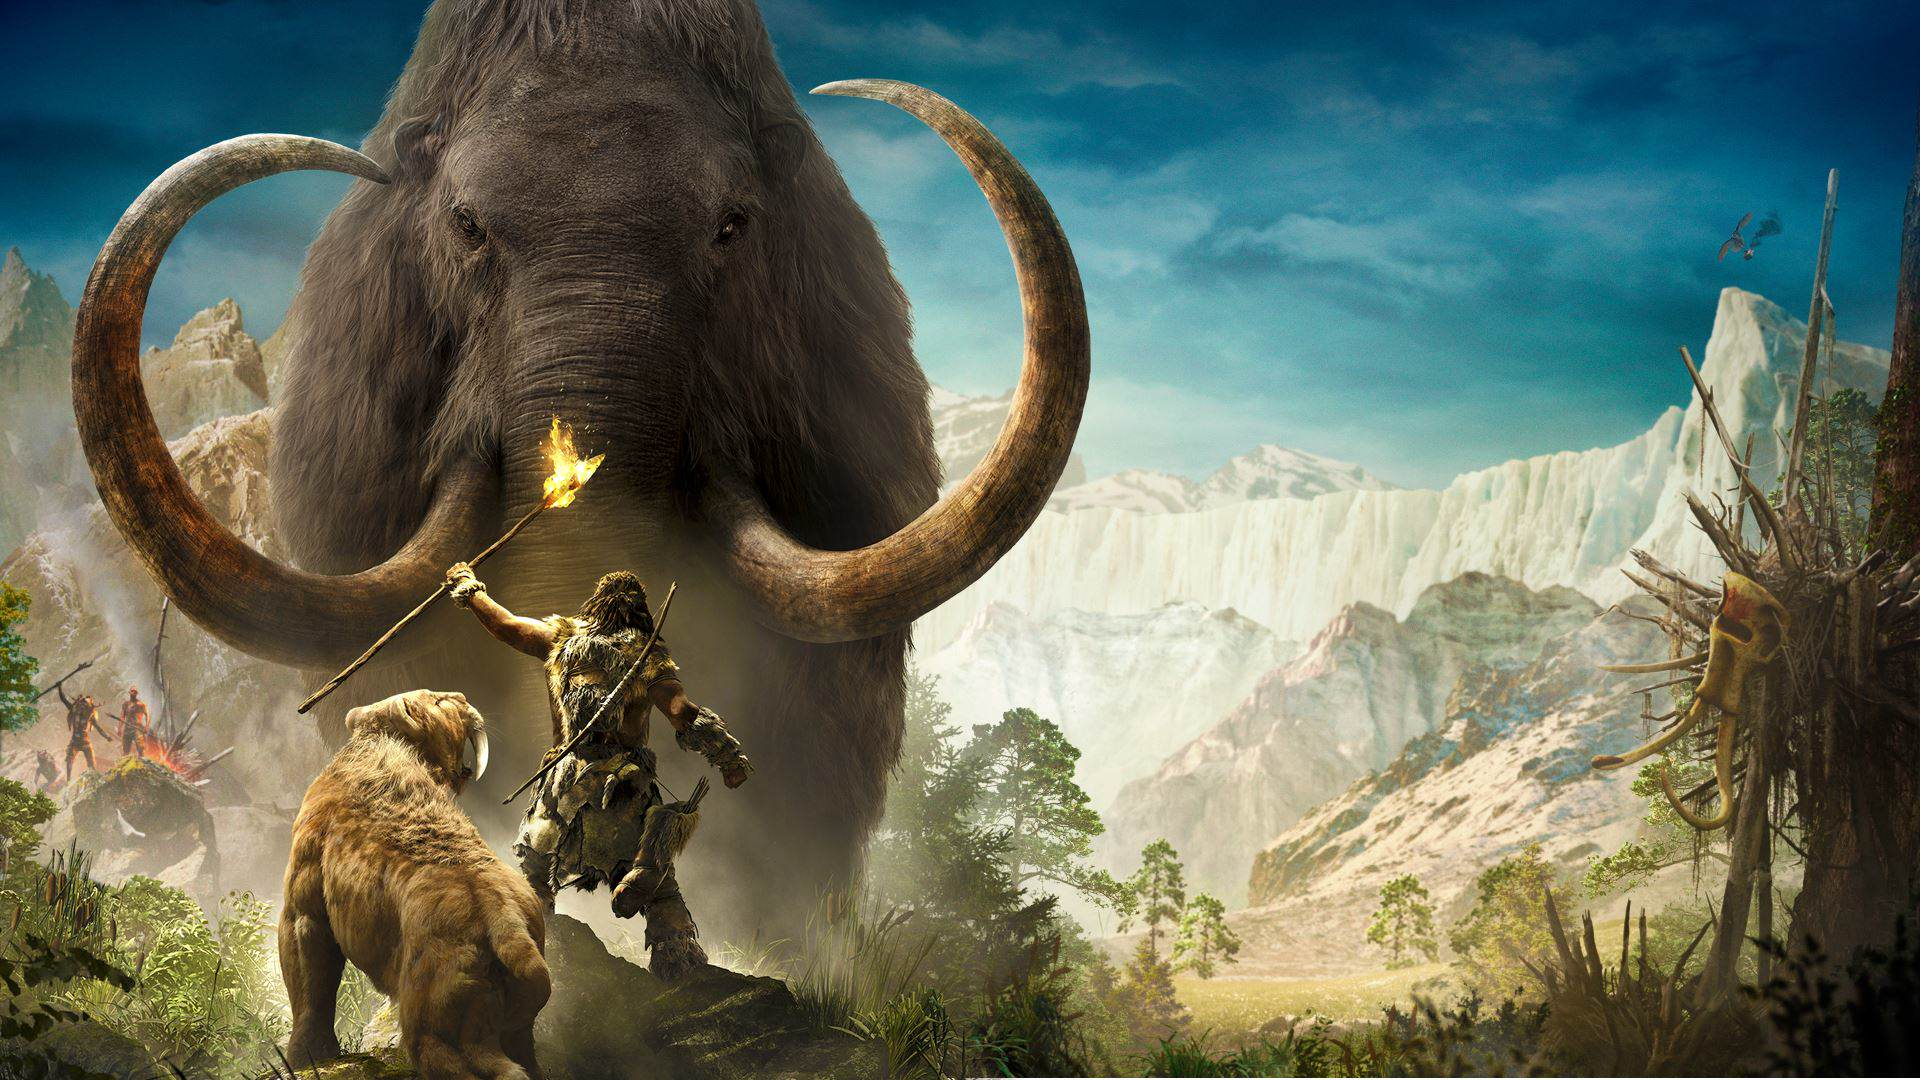 Far Cry Primal Introducing Intense New Challenge In April image 7